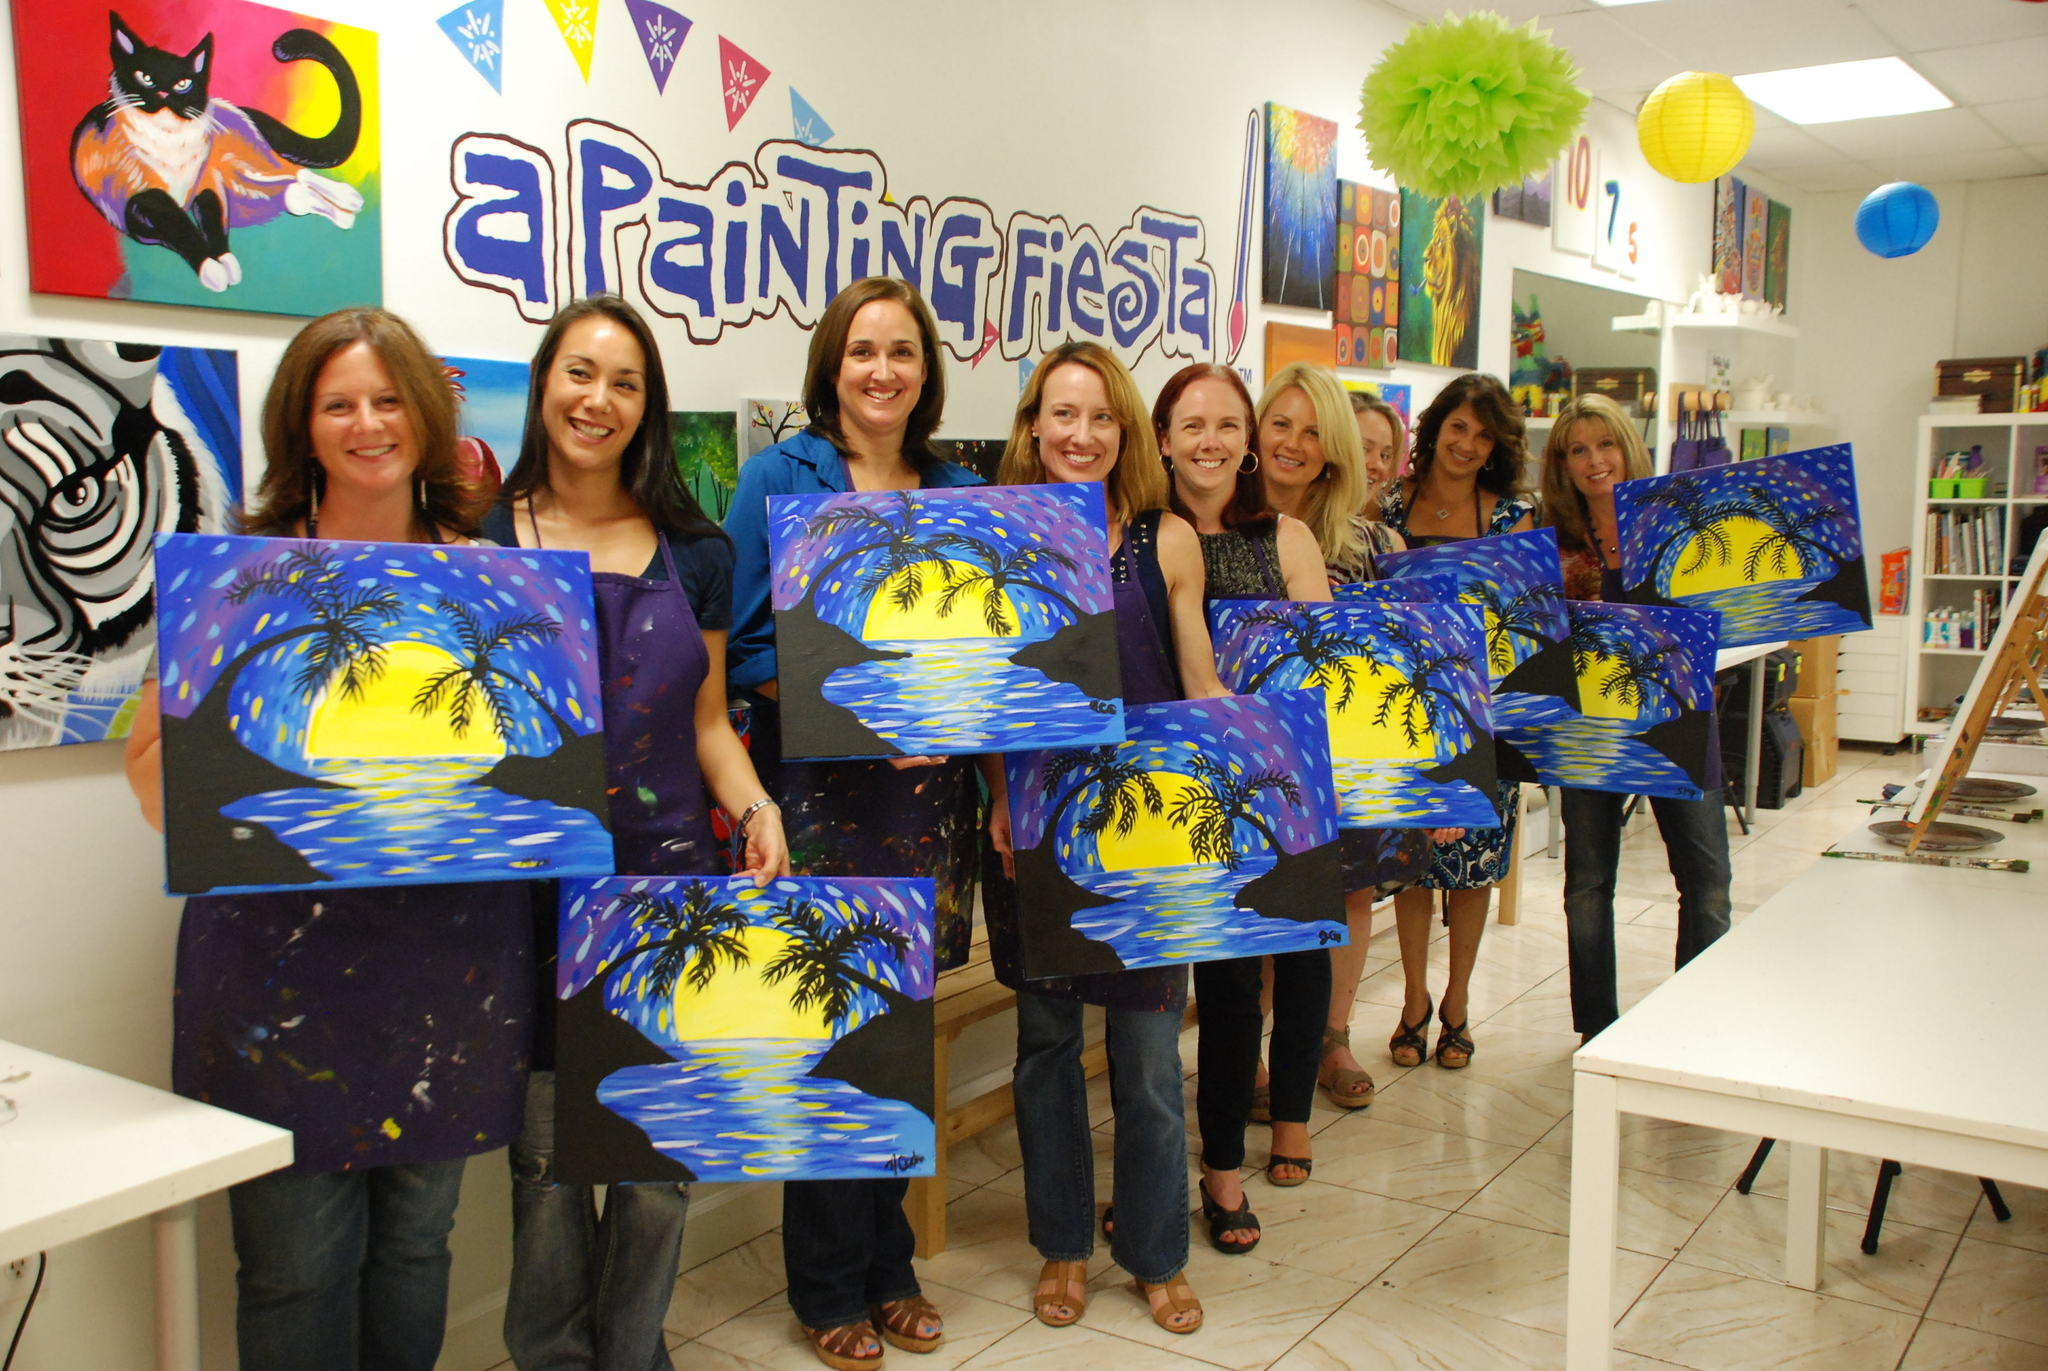 A recent class at A Painting Fiesta Studio in Coral Springs where people can paint while drinking wine.